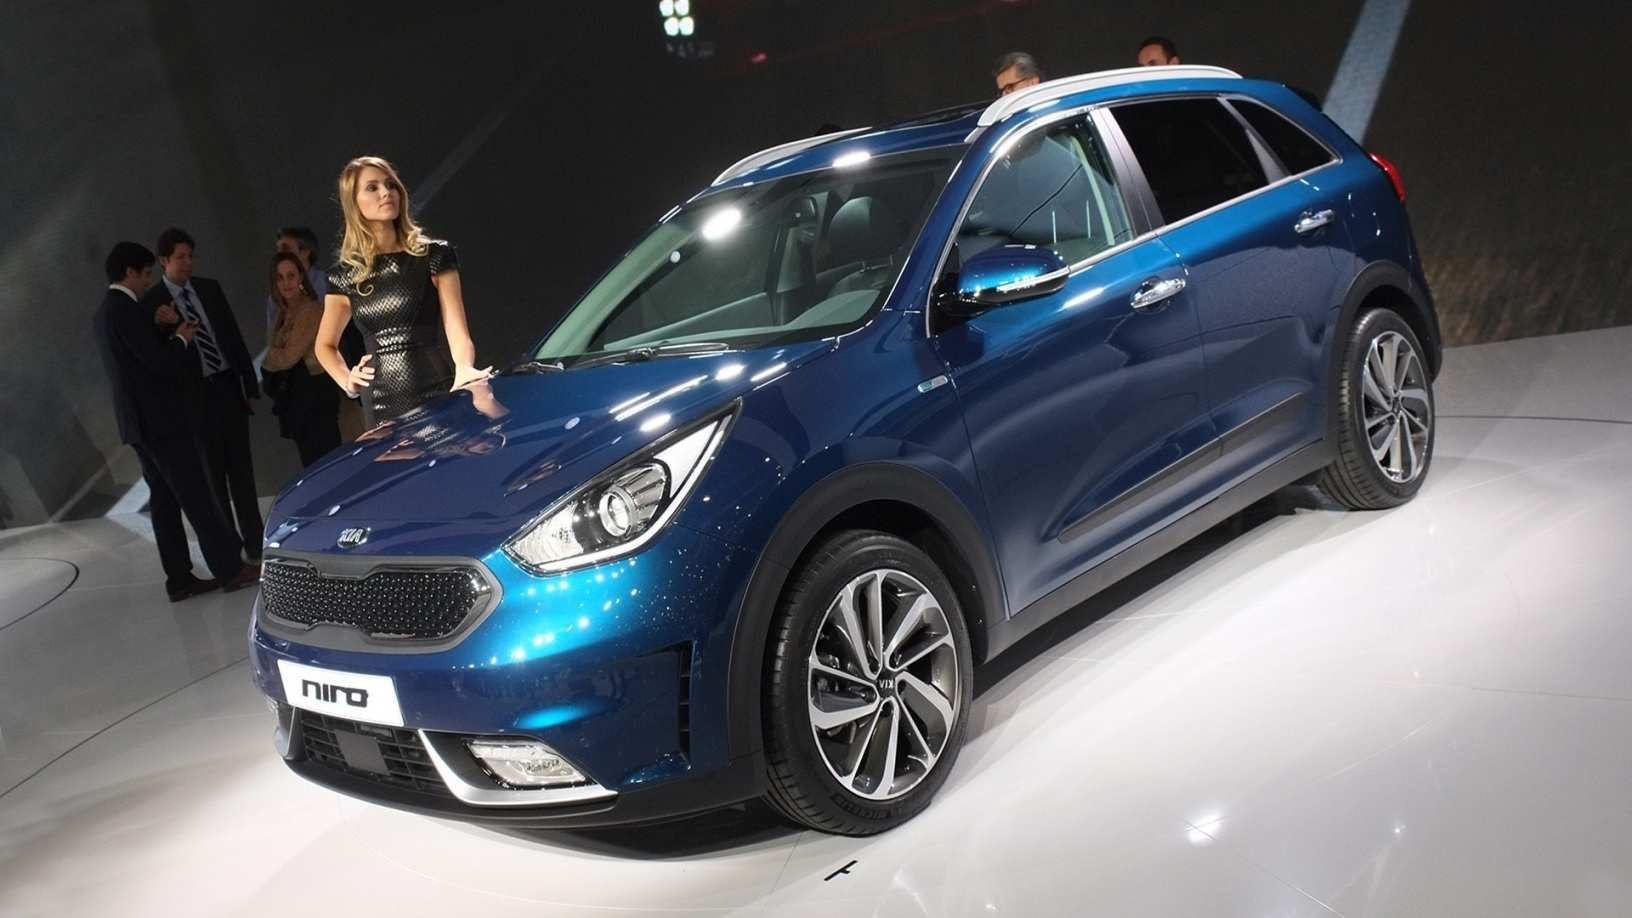 14 All New Kia Niro 2020 Release Date Images